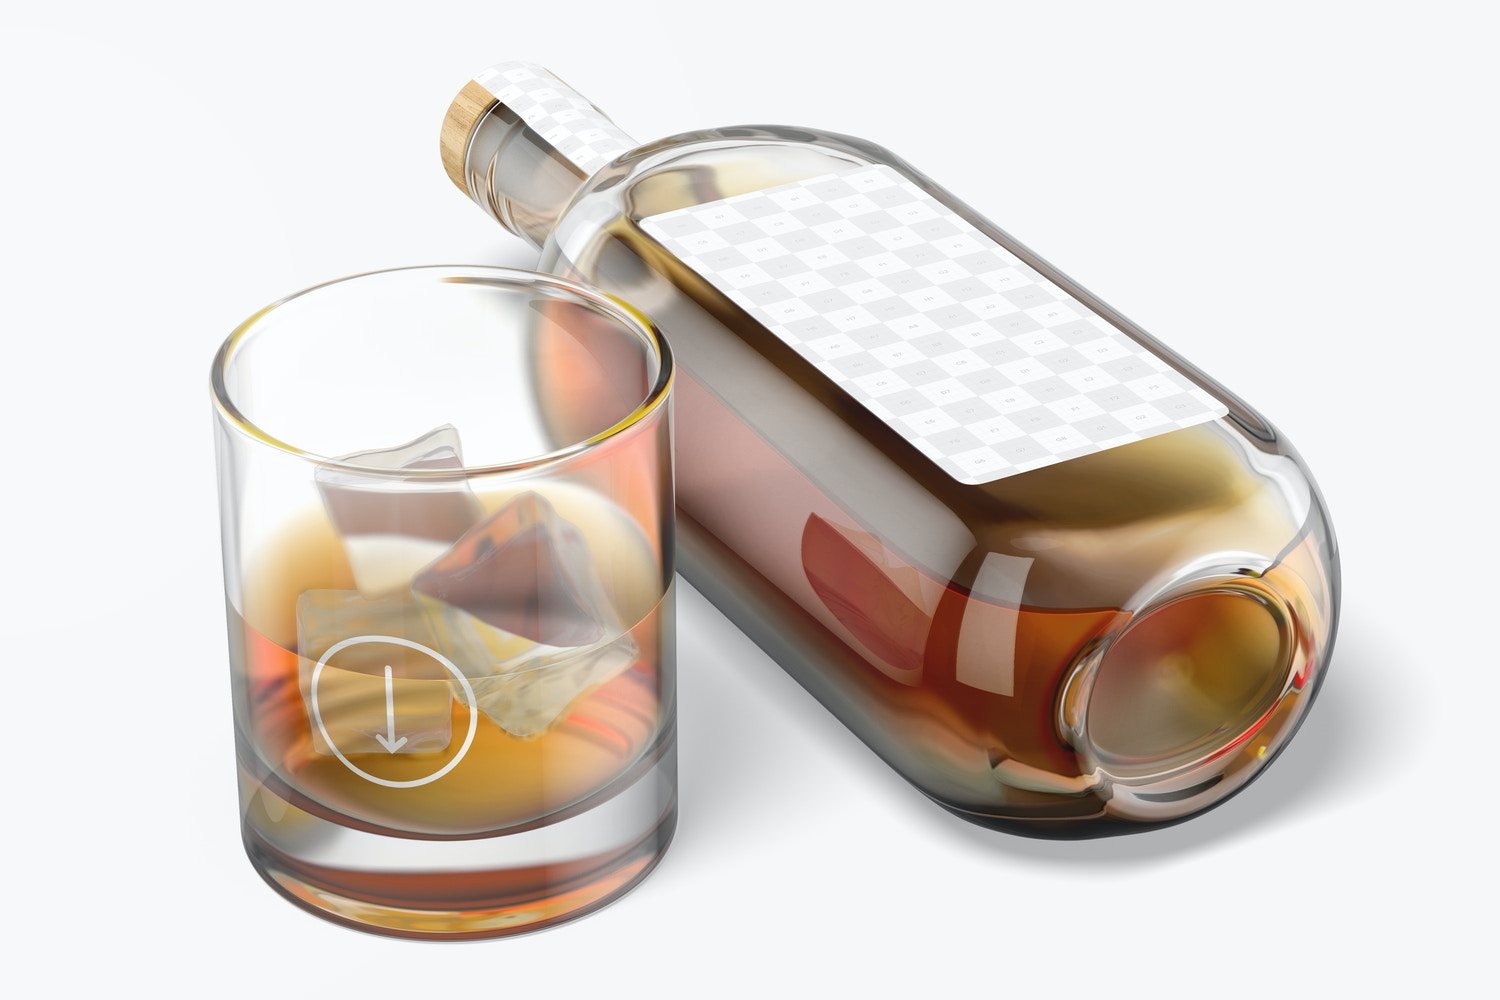 11 oz Whiskey Glass Cup Mockup